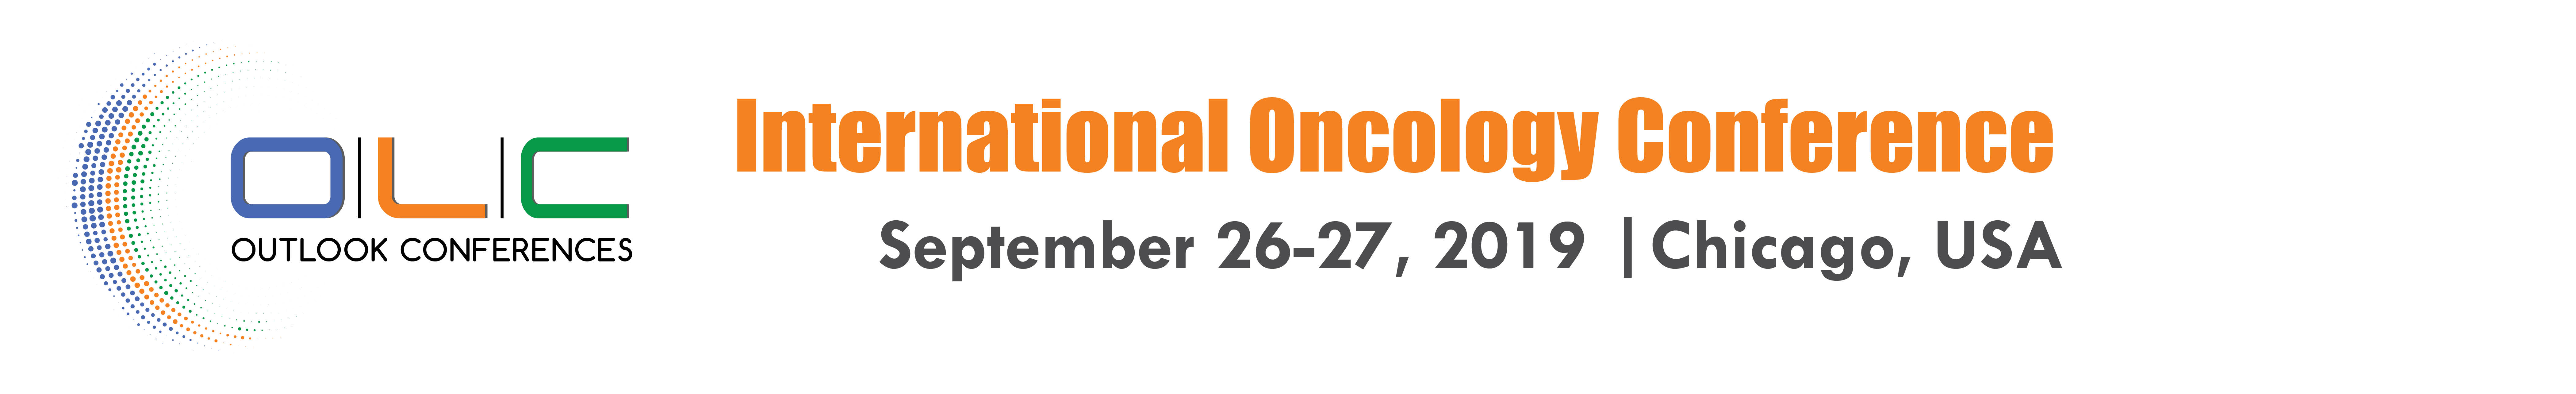 International Oncology Conference